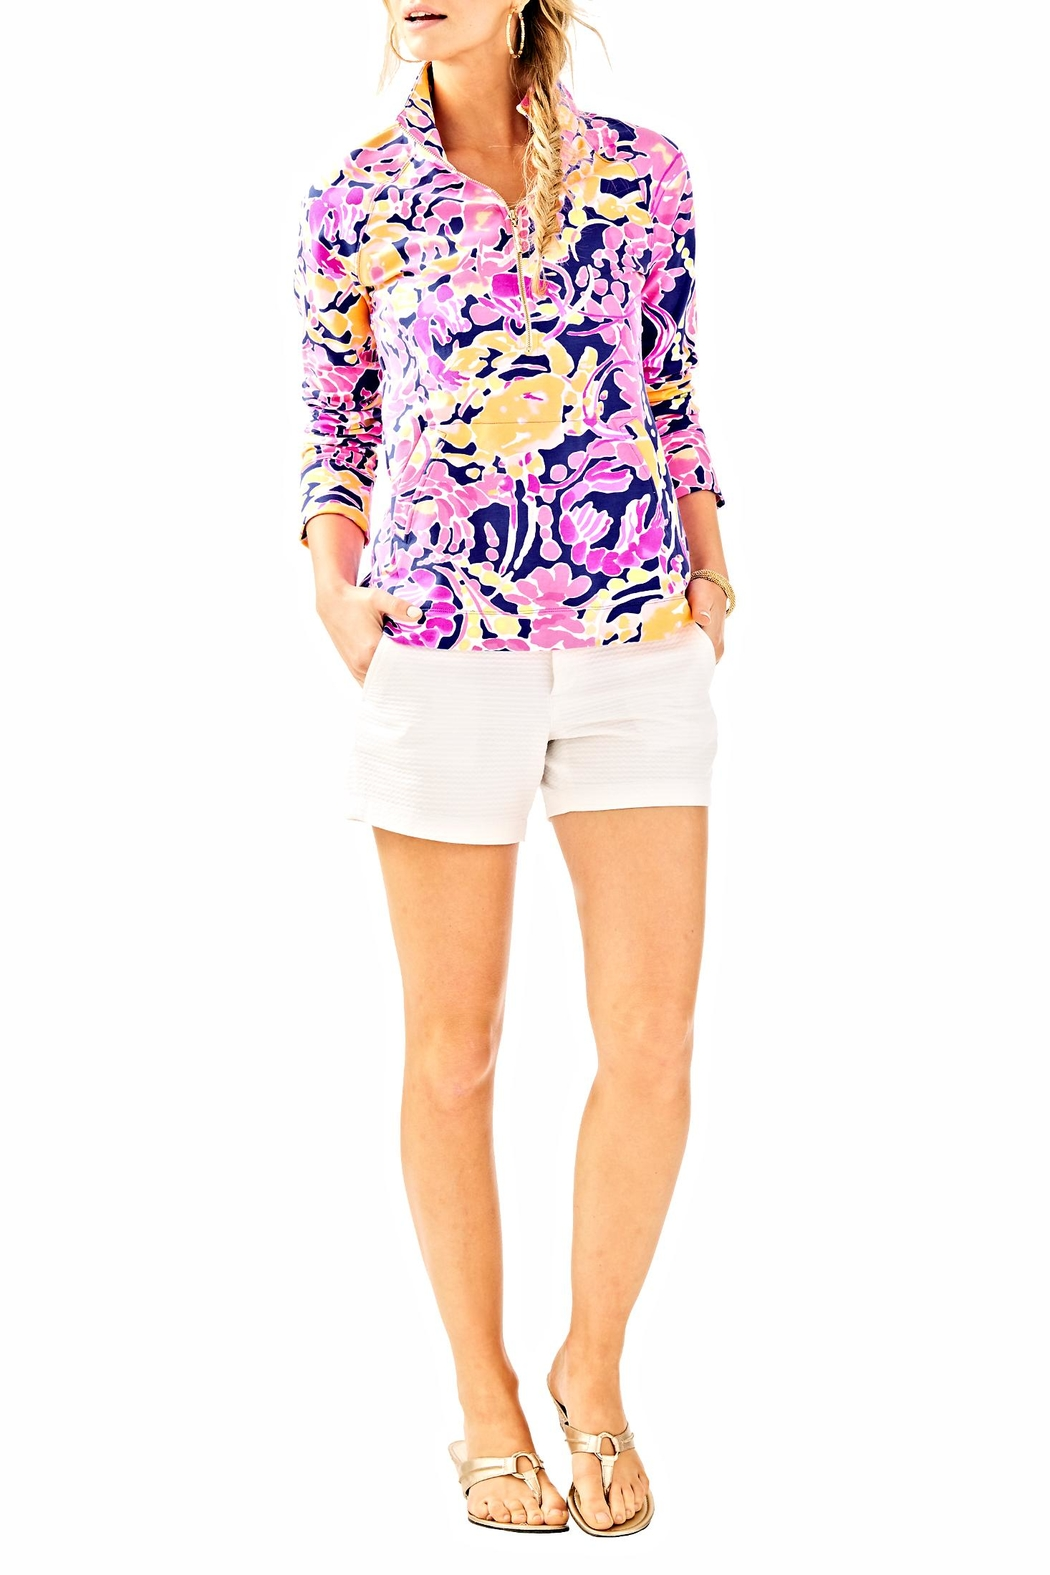 Lilly Pulitzer Skipper Printed Popover Sweater - Side Cropped Image